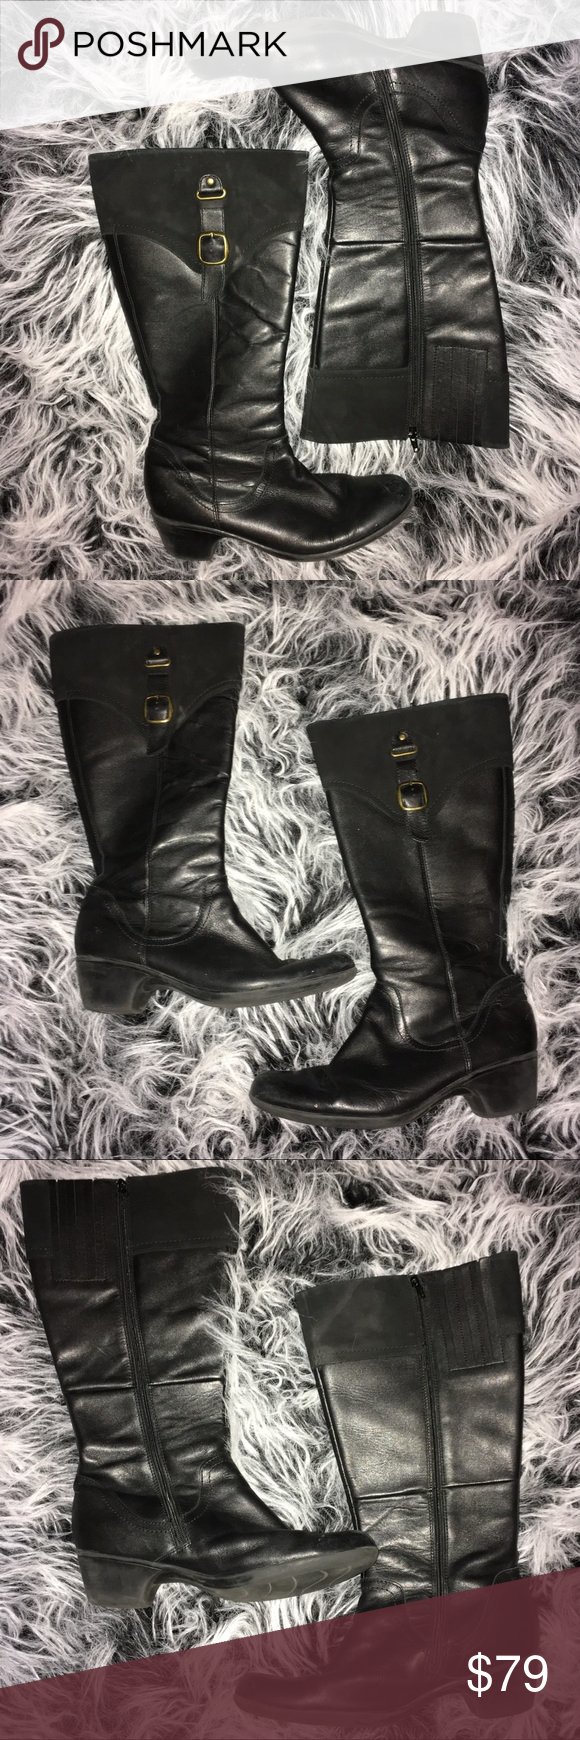 Clarks Ingalls Delaware Knee Boots Clarks Ingalls Delaware boots in black.  Size 12. One small scuff on the outer left boot as shown in the photos.